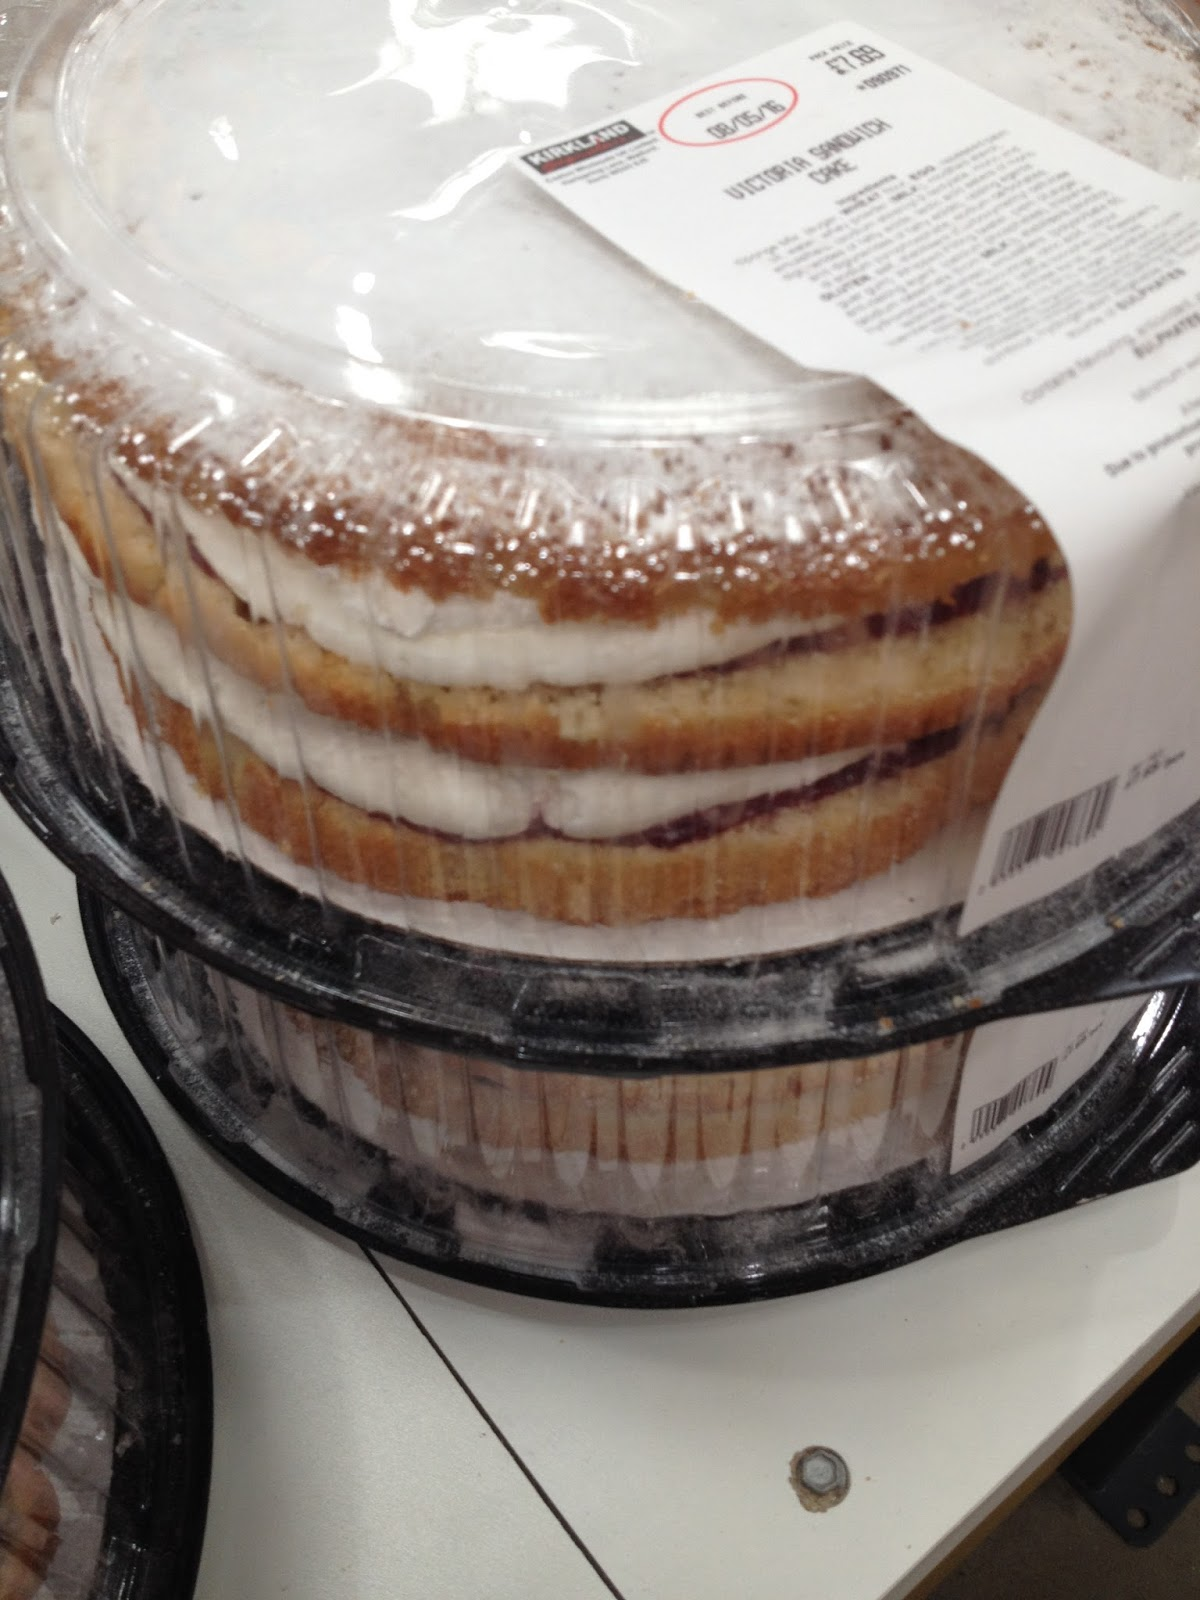 How To Order A Costco Cake Uk